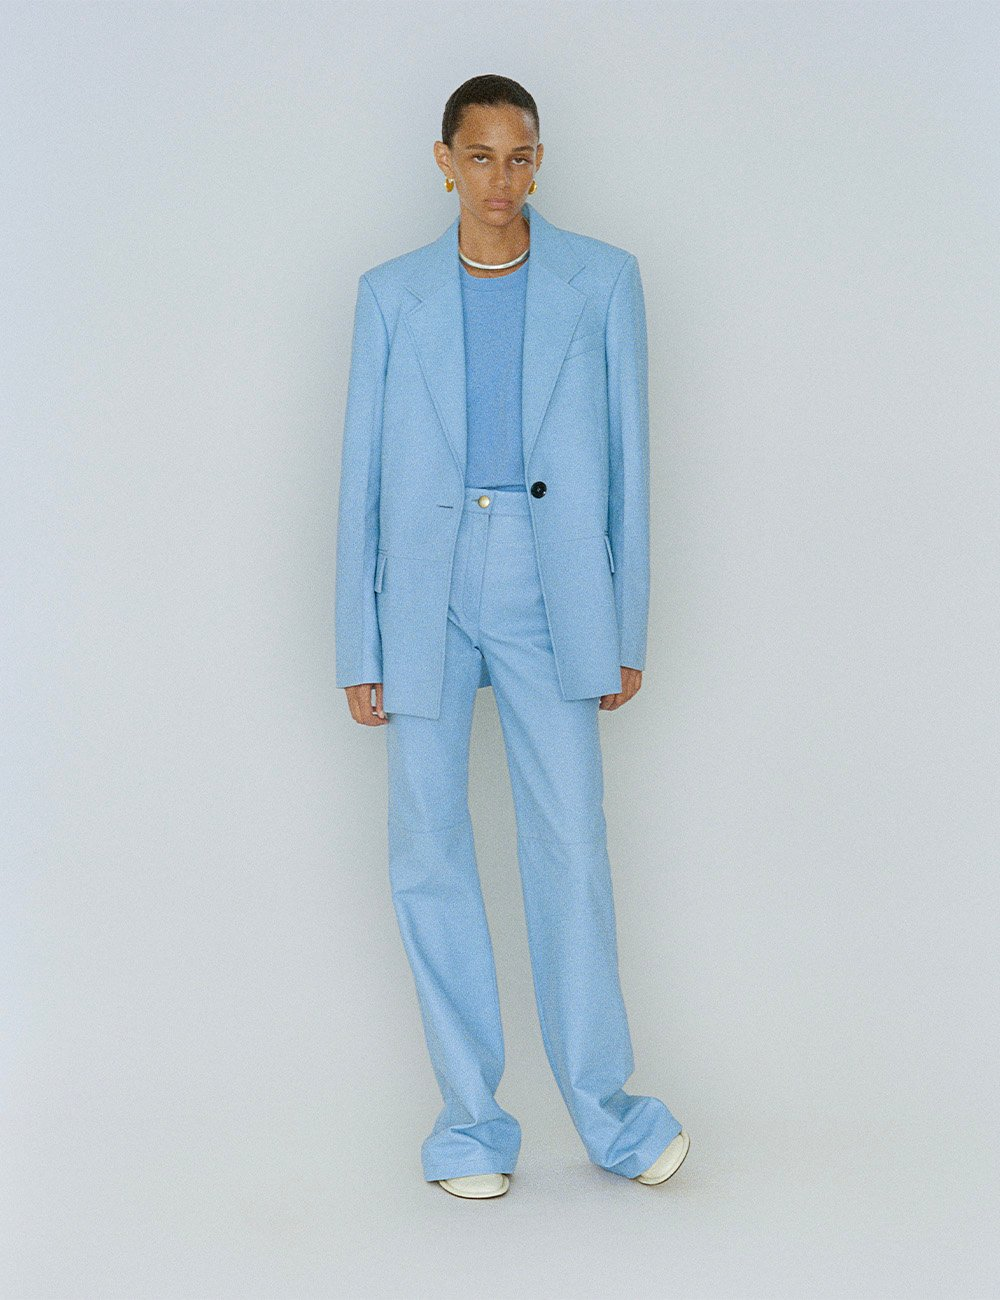 SS21 Look 12: Blue Leather Suit